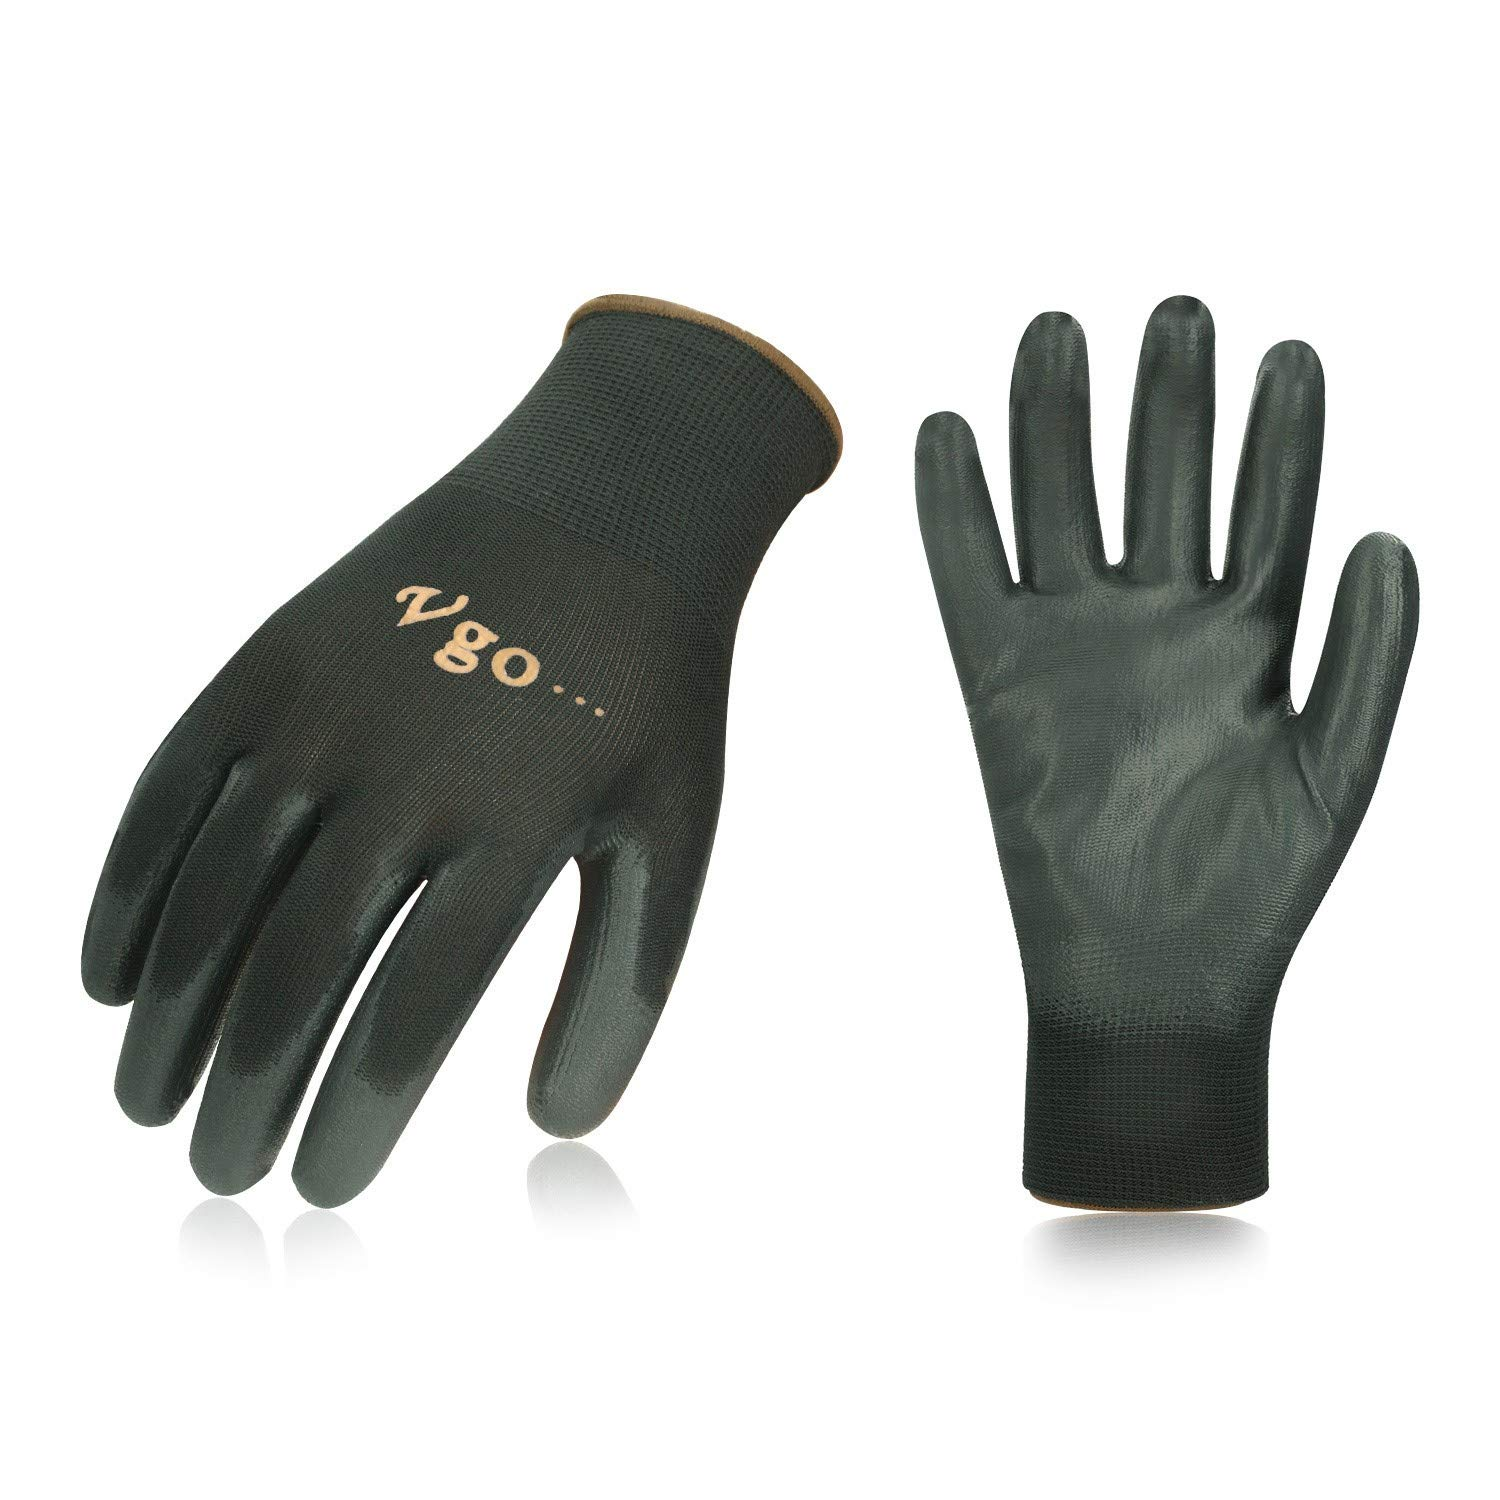 Vgo… PU Coated Gardening and Work Gloves (15 Pairs, Size 9/L and 10/XL)